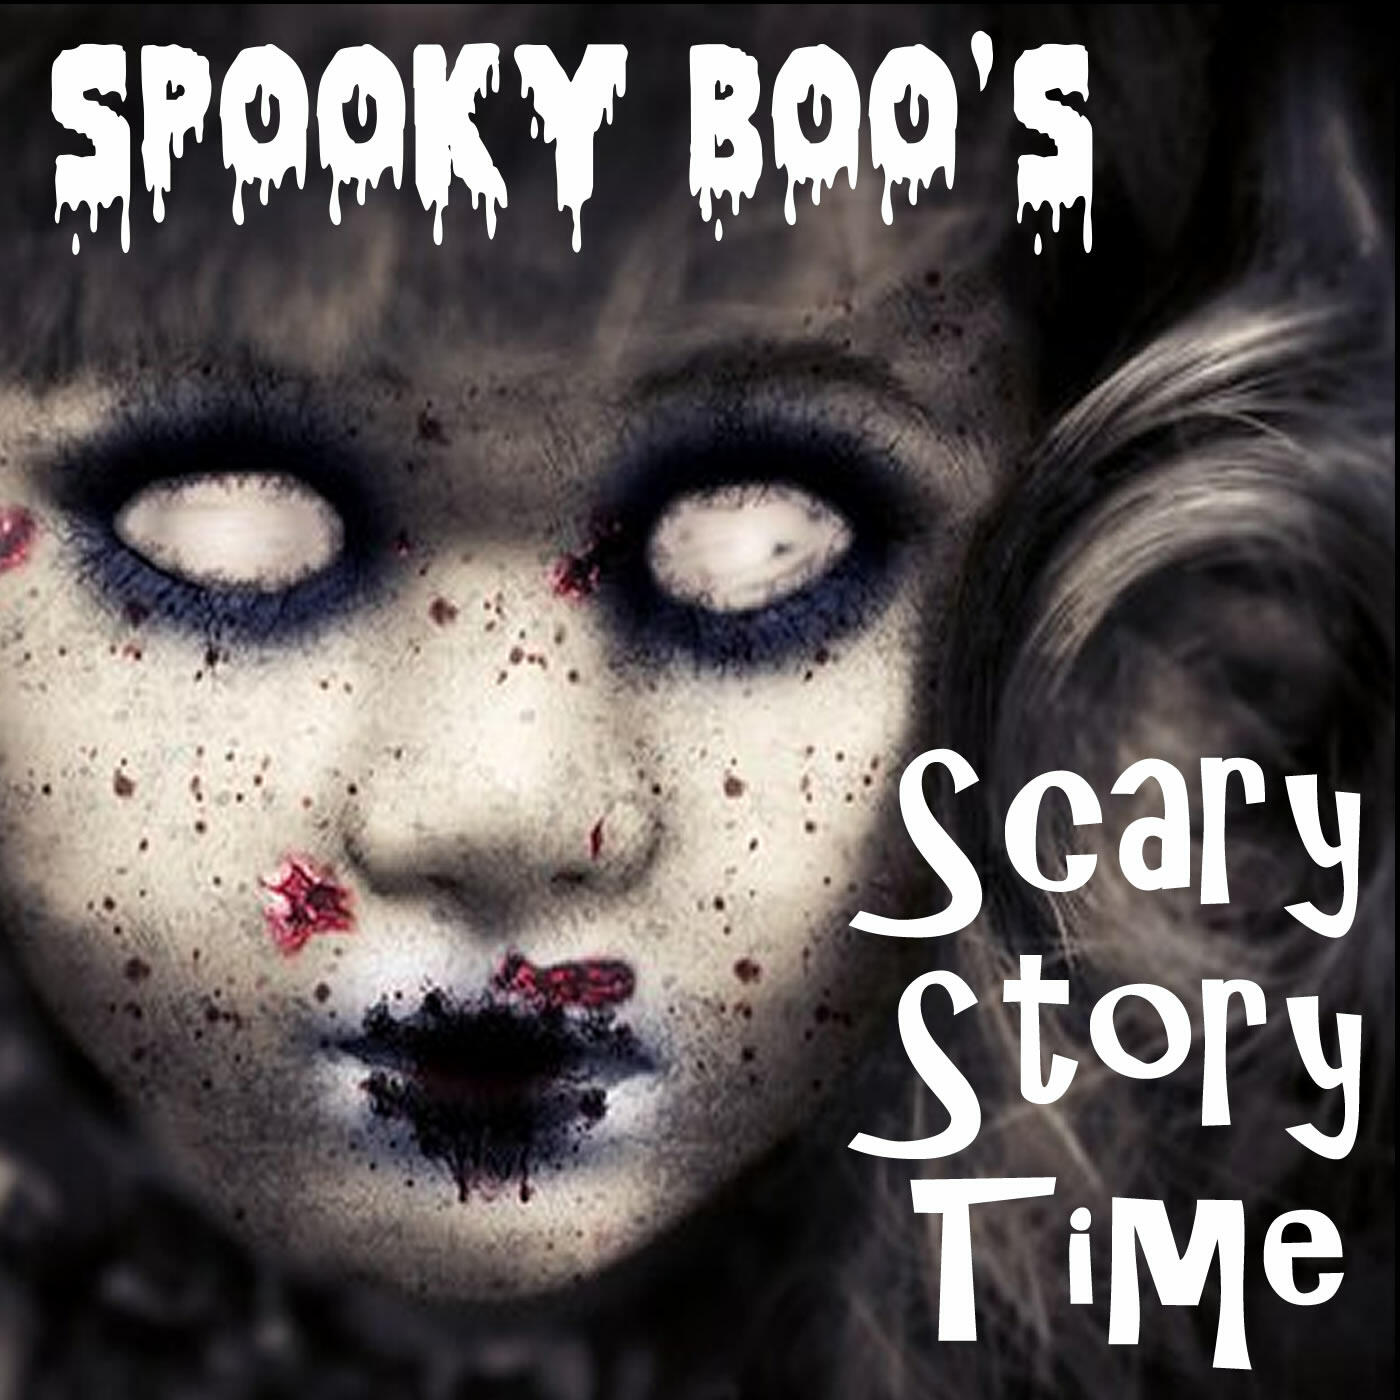 Listen to the Spooky Boo's Scary Story Time Episode - Two Spine